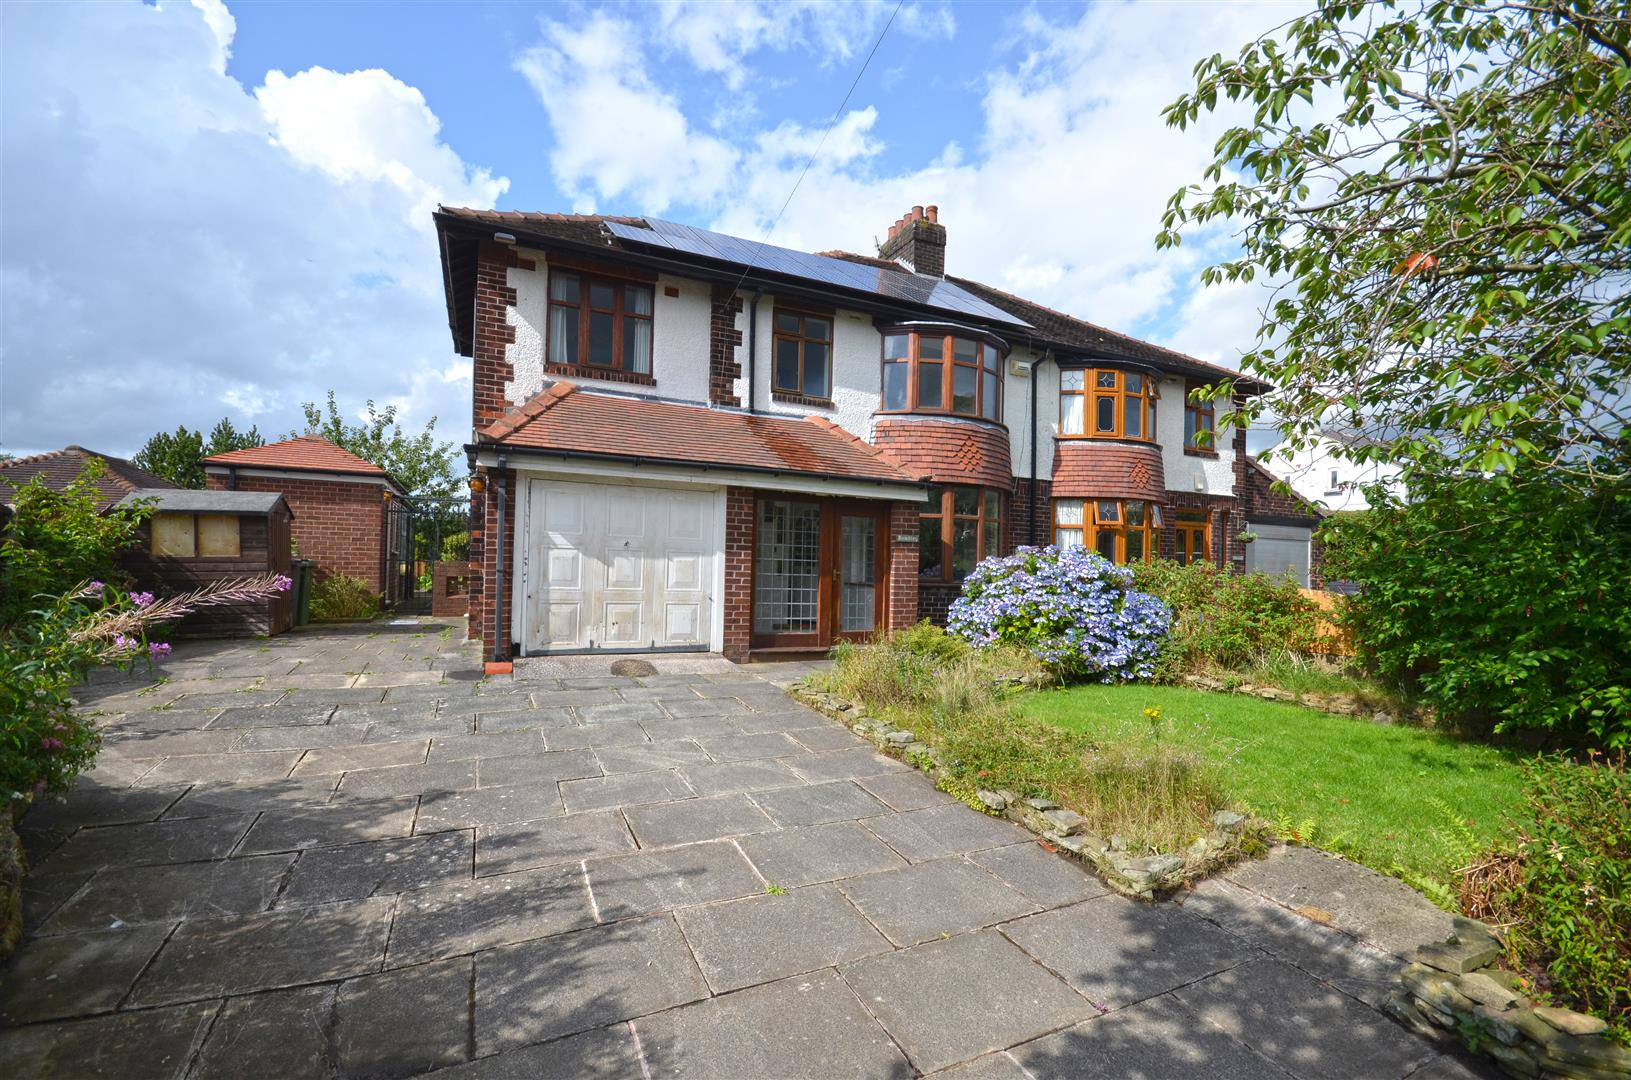 Estate Agent Ashton Under Lyne House For Sale In Ashton